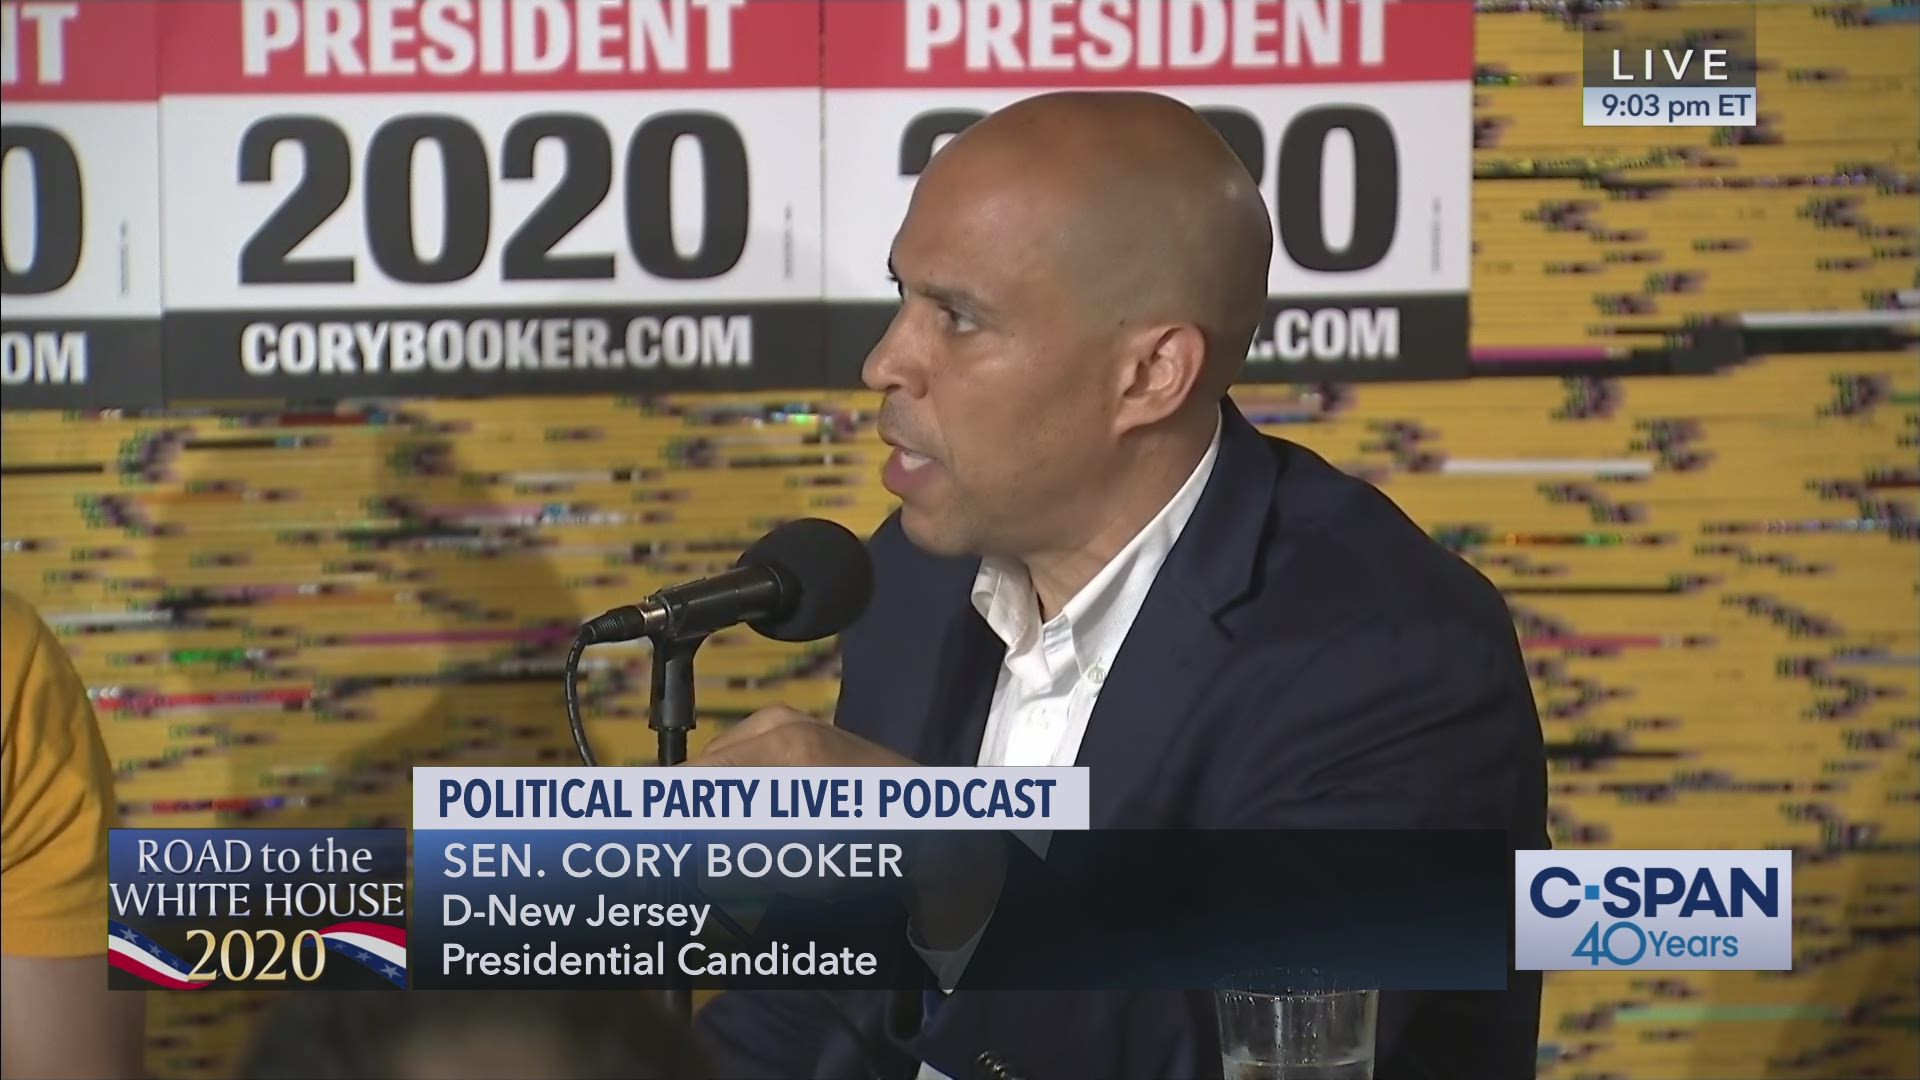 Best Podcast Hosting 2020 Senator Cory Booker at Political Party Live! Podcast in Iowa | C